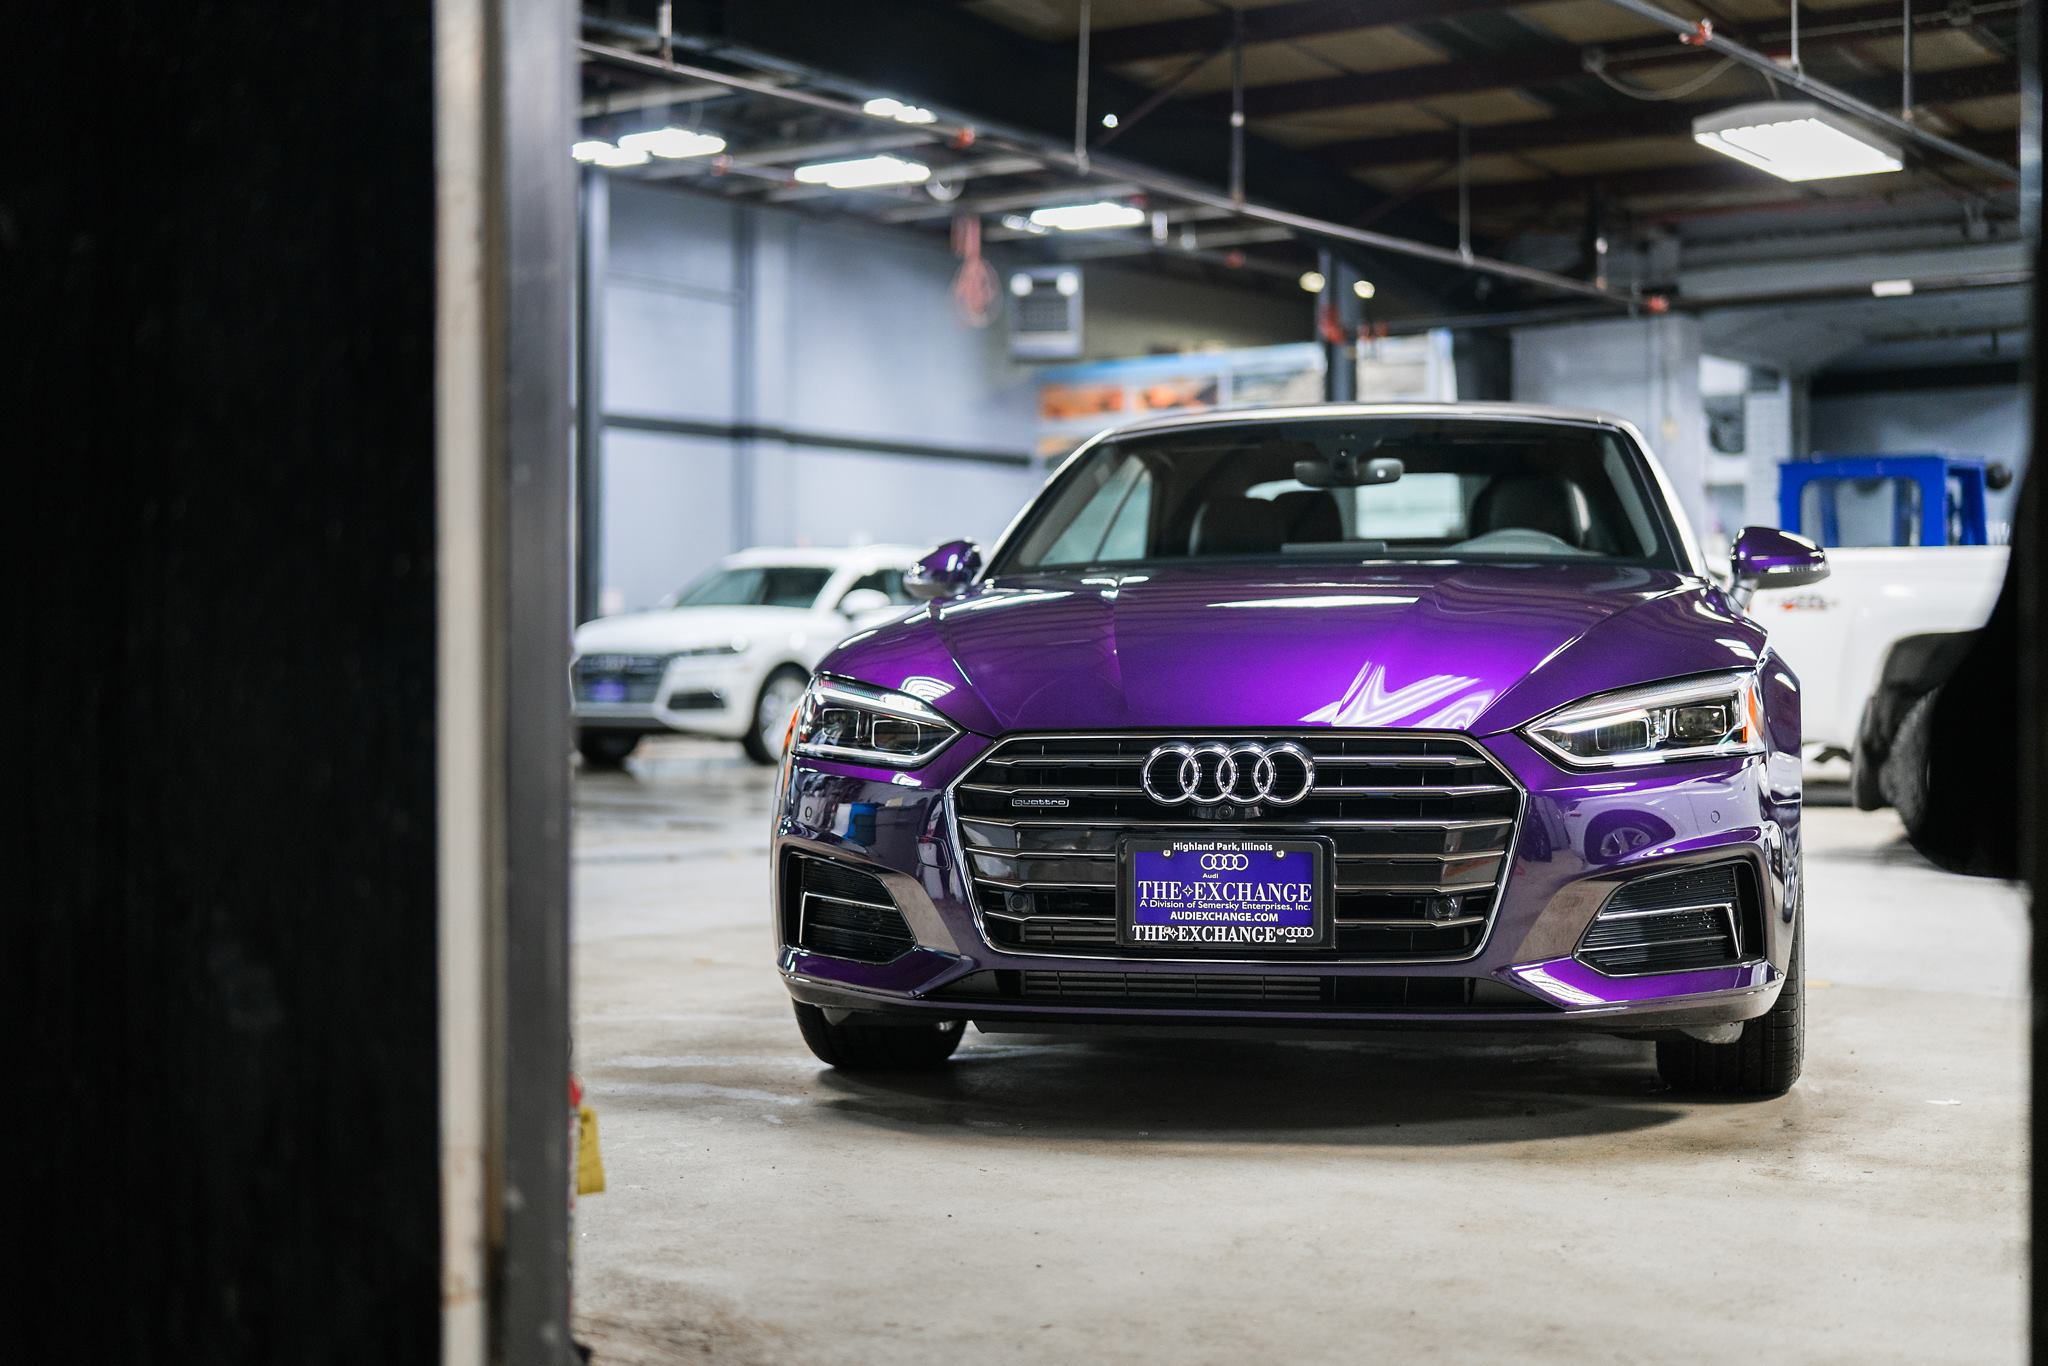 Customize Your Dream Car With Audi Exclusive At The Audi Exchange - Audi car exchange